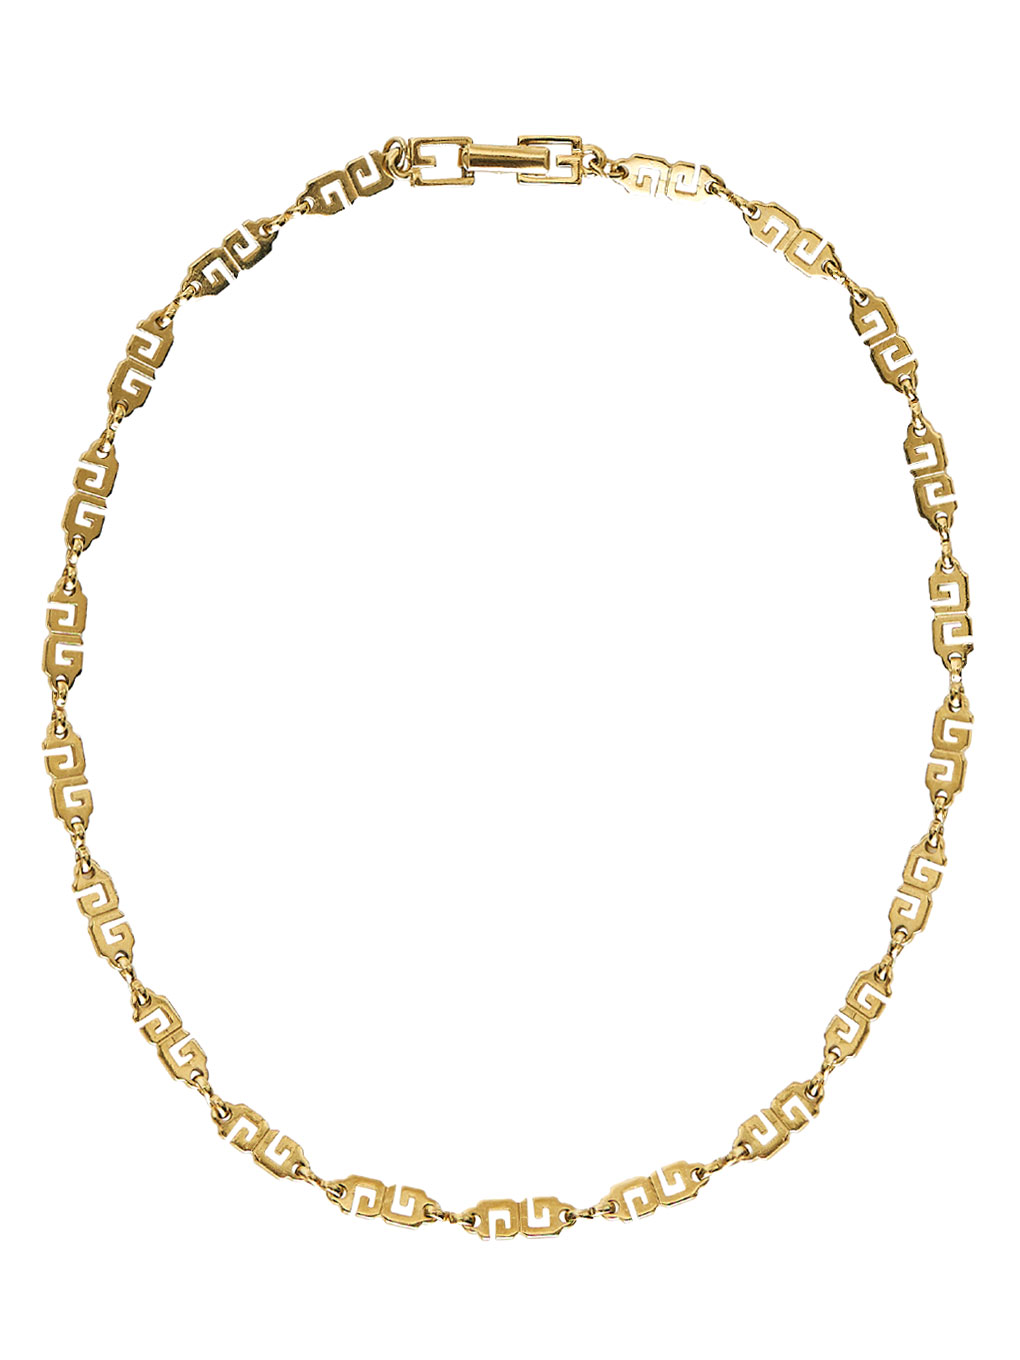 GIVENCHY LOGO GOLD NECKLACE